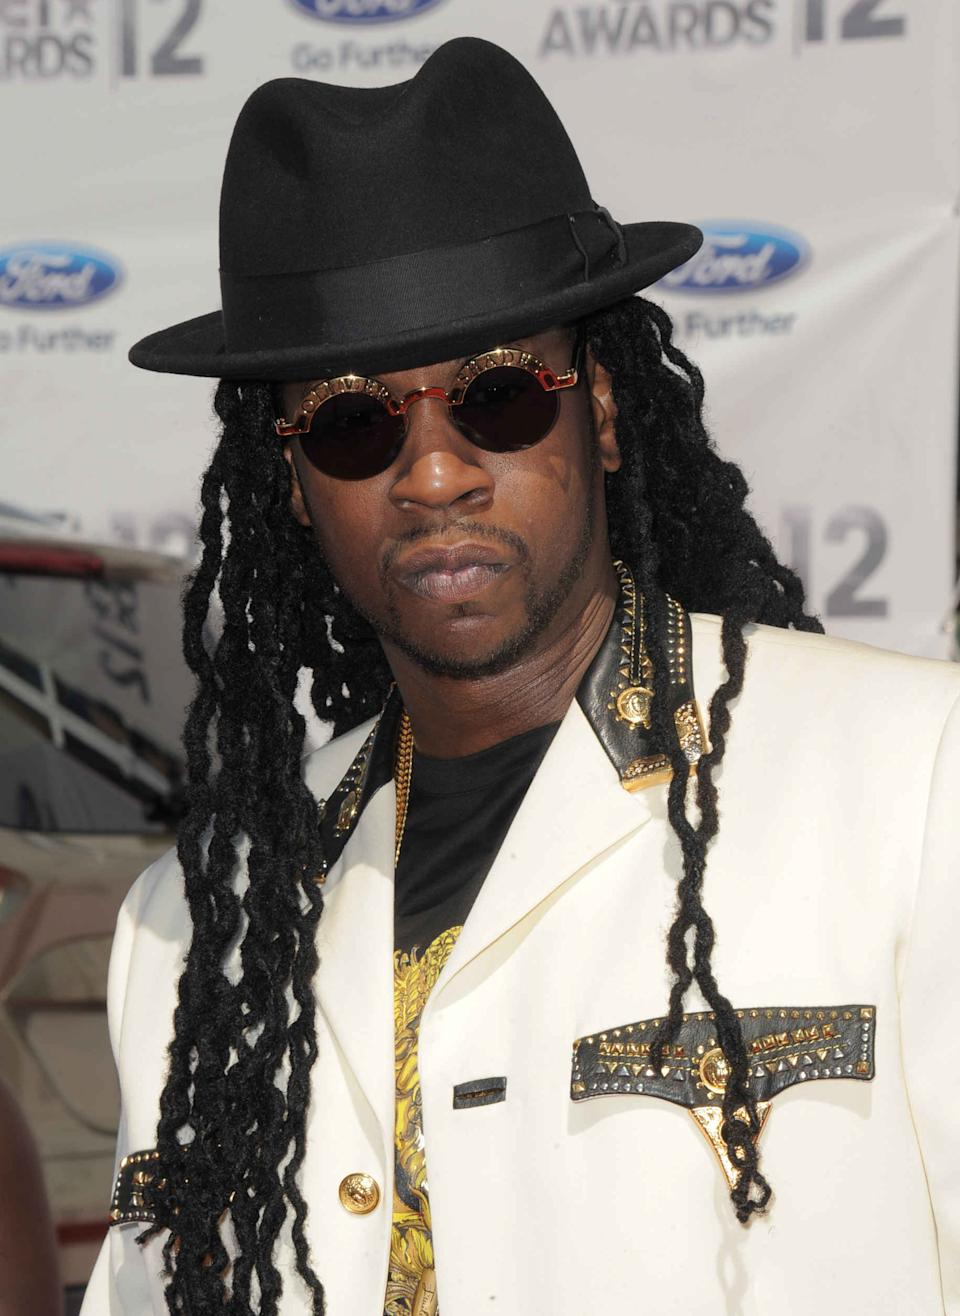 Tauheed Epps, known as 2 Chainz, arrives at the BET Awards on Sunday, July 1, 2012, in Los Angeles. (Photo by Jordan Strauss/Invision/AP)